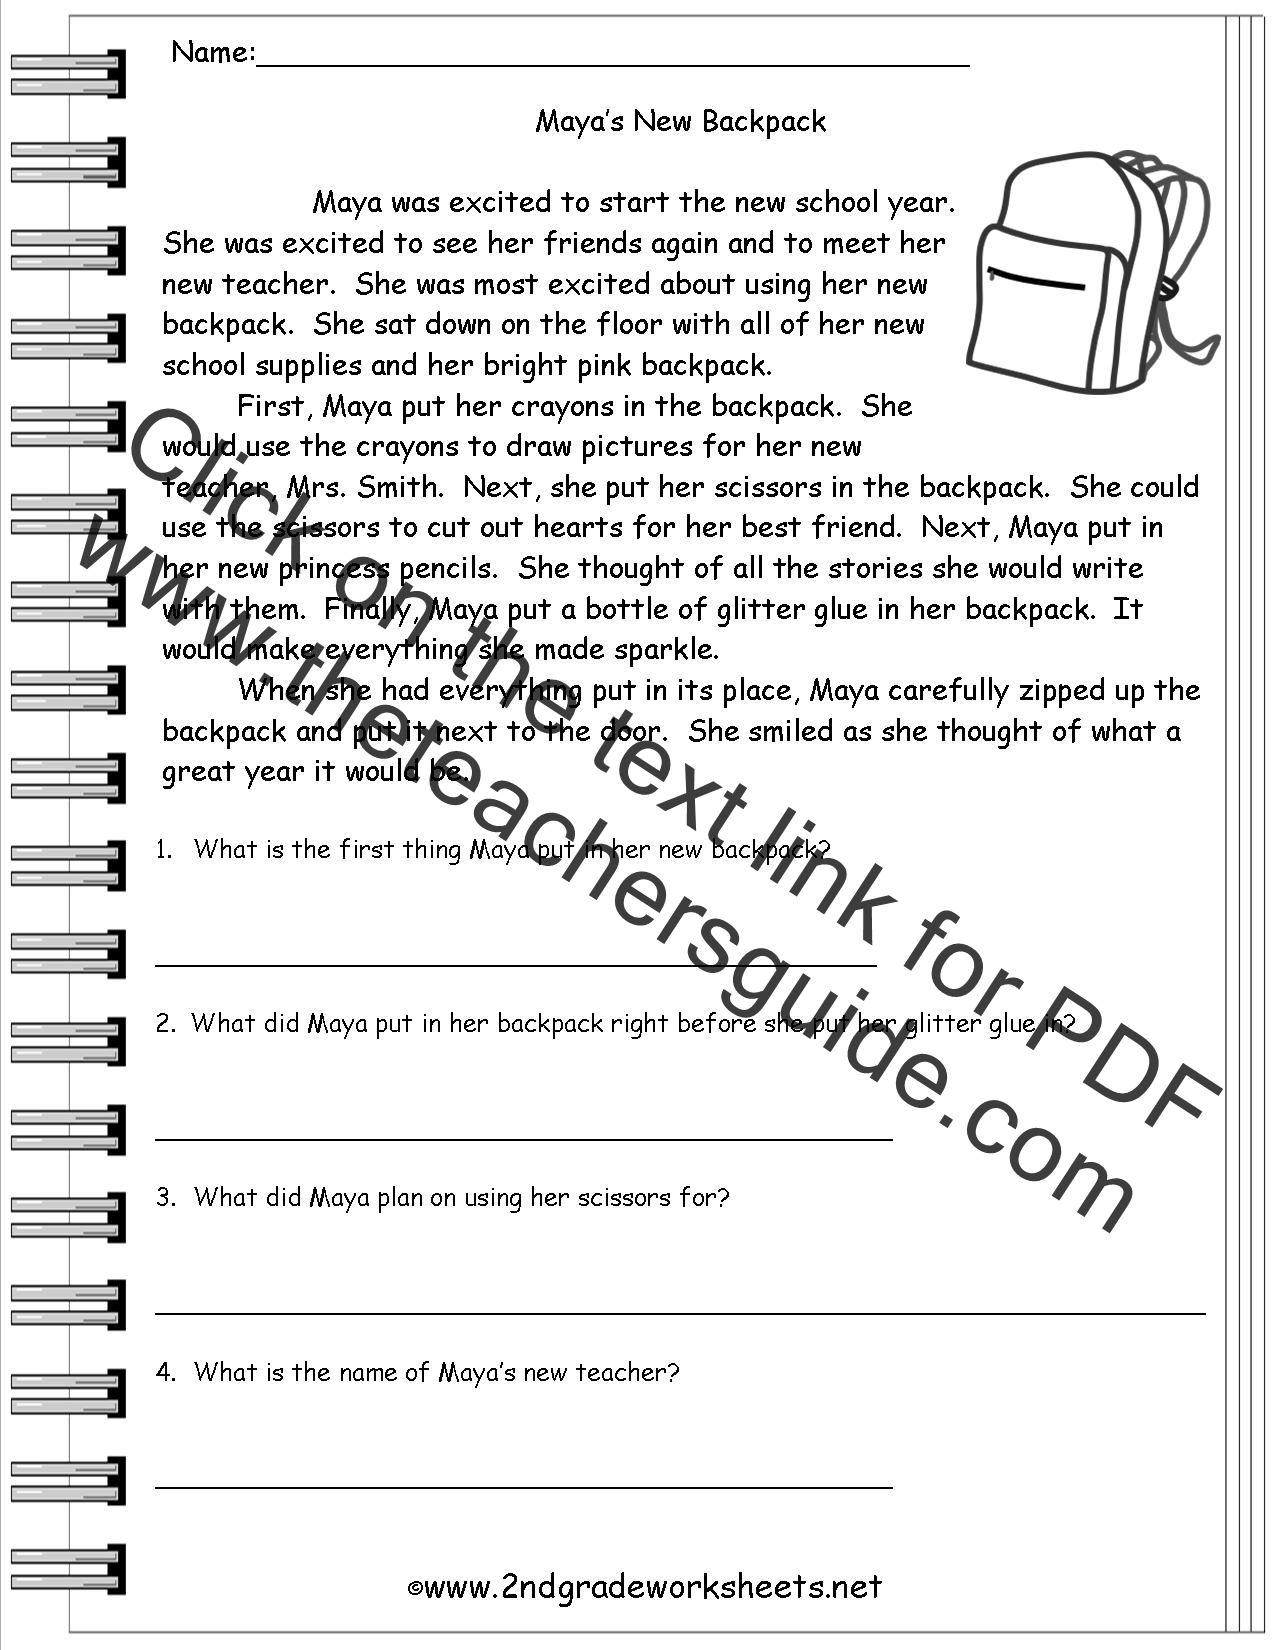 Worksheet Reading Worksheets For Grade 3 worksheet grade 3 reading comprehension worksheets printable common core worksheeet